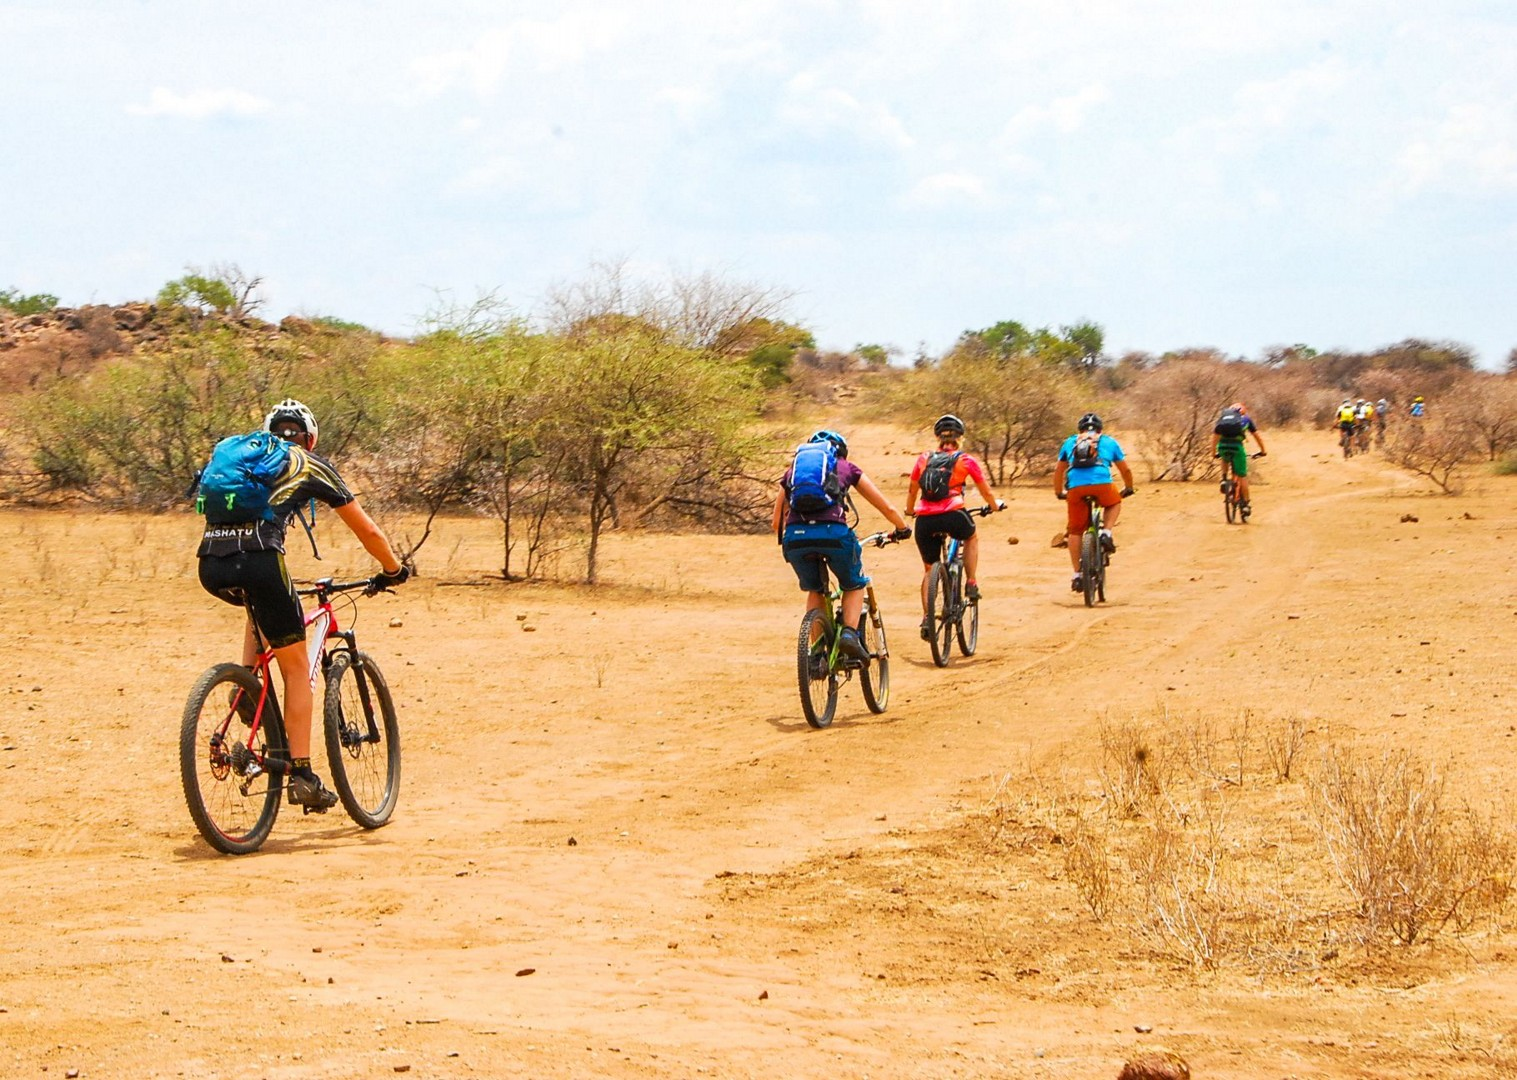 botswana-and-south-africa-holiday-saddle-skedaddle-mtb-holiday.jpg - NEW! South Africa and Botswana - Mountain Biking